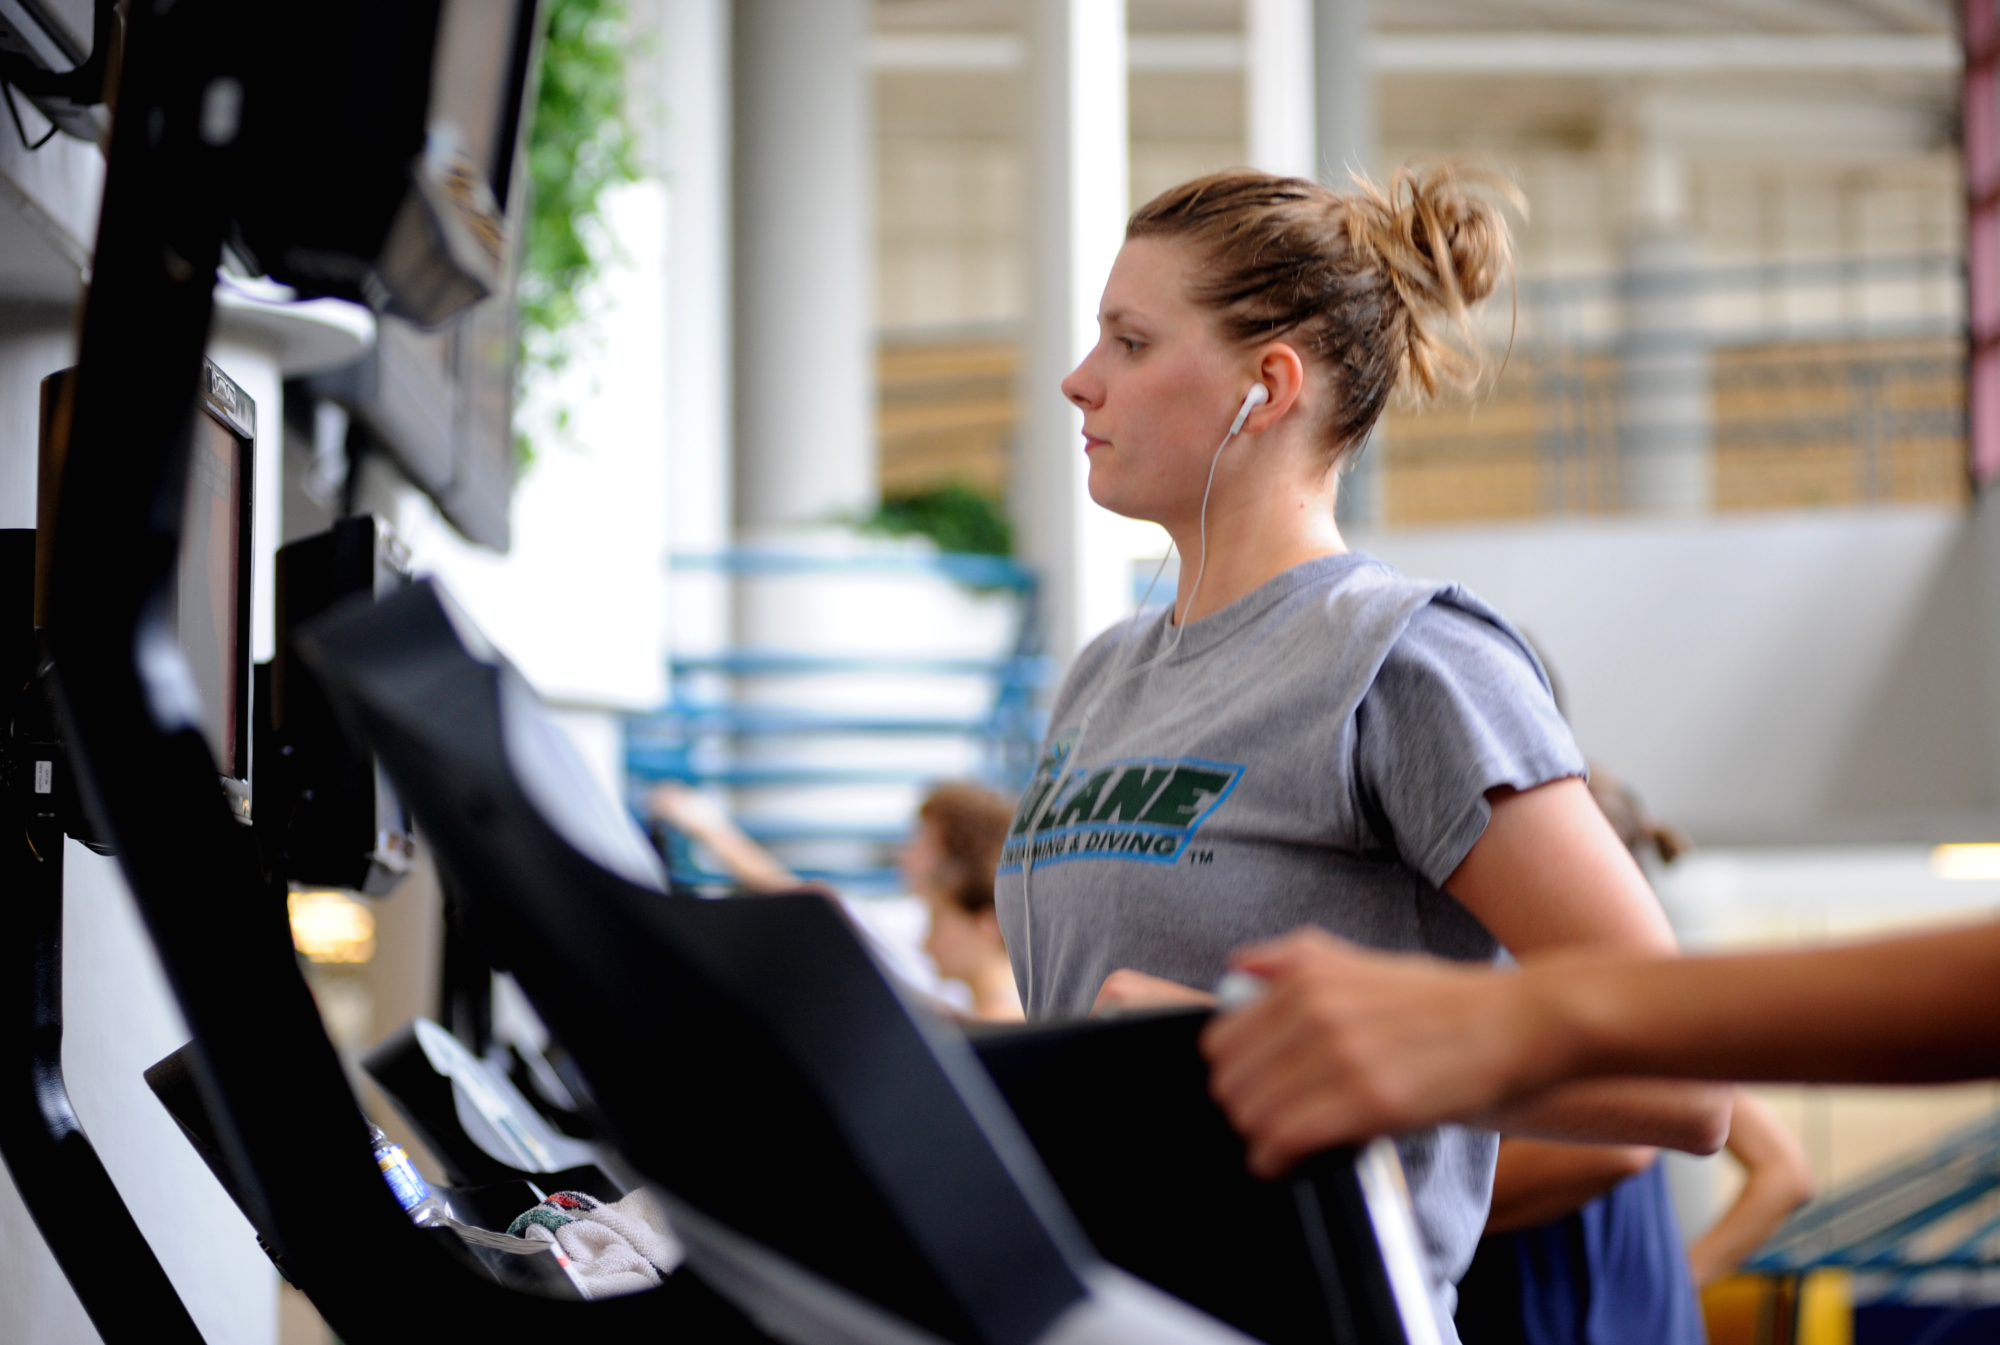 Working_Out_At_The_Reily_Center_3726377407.jpg